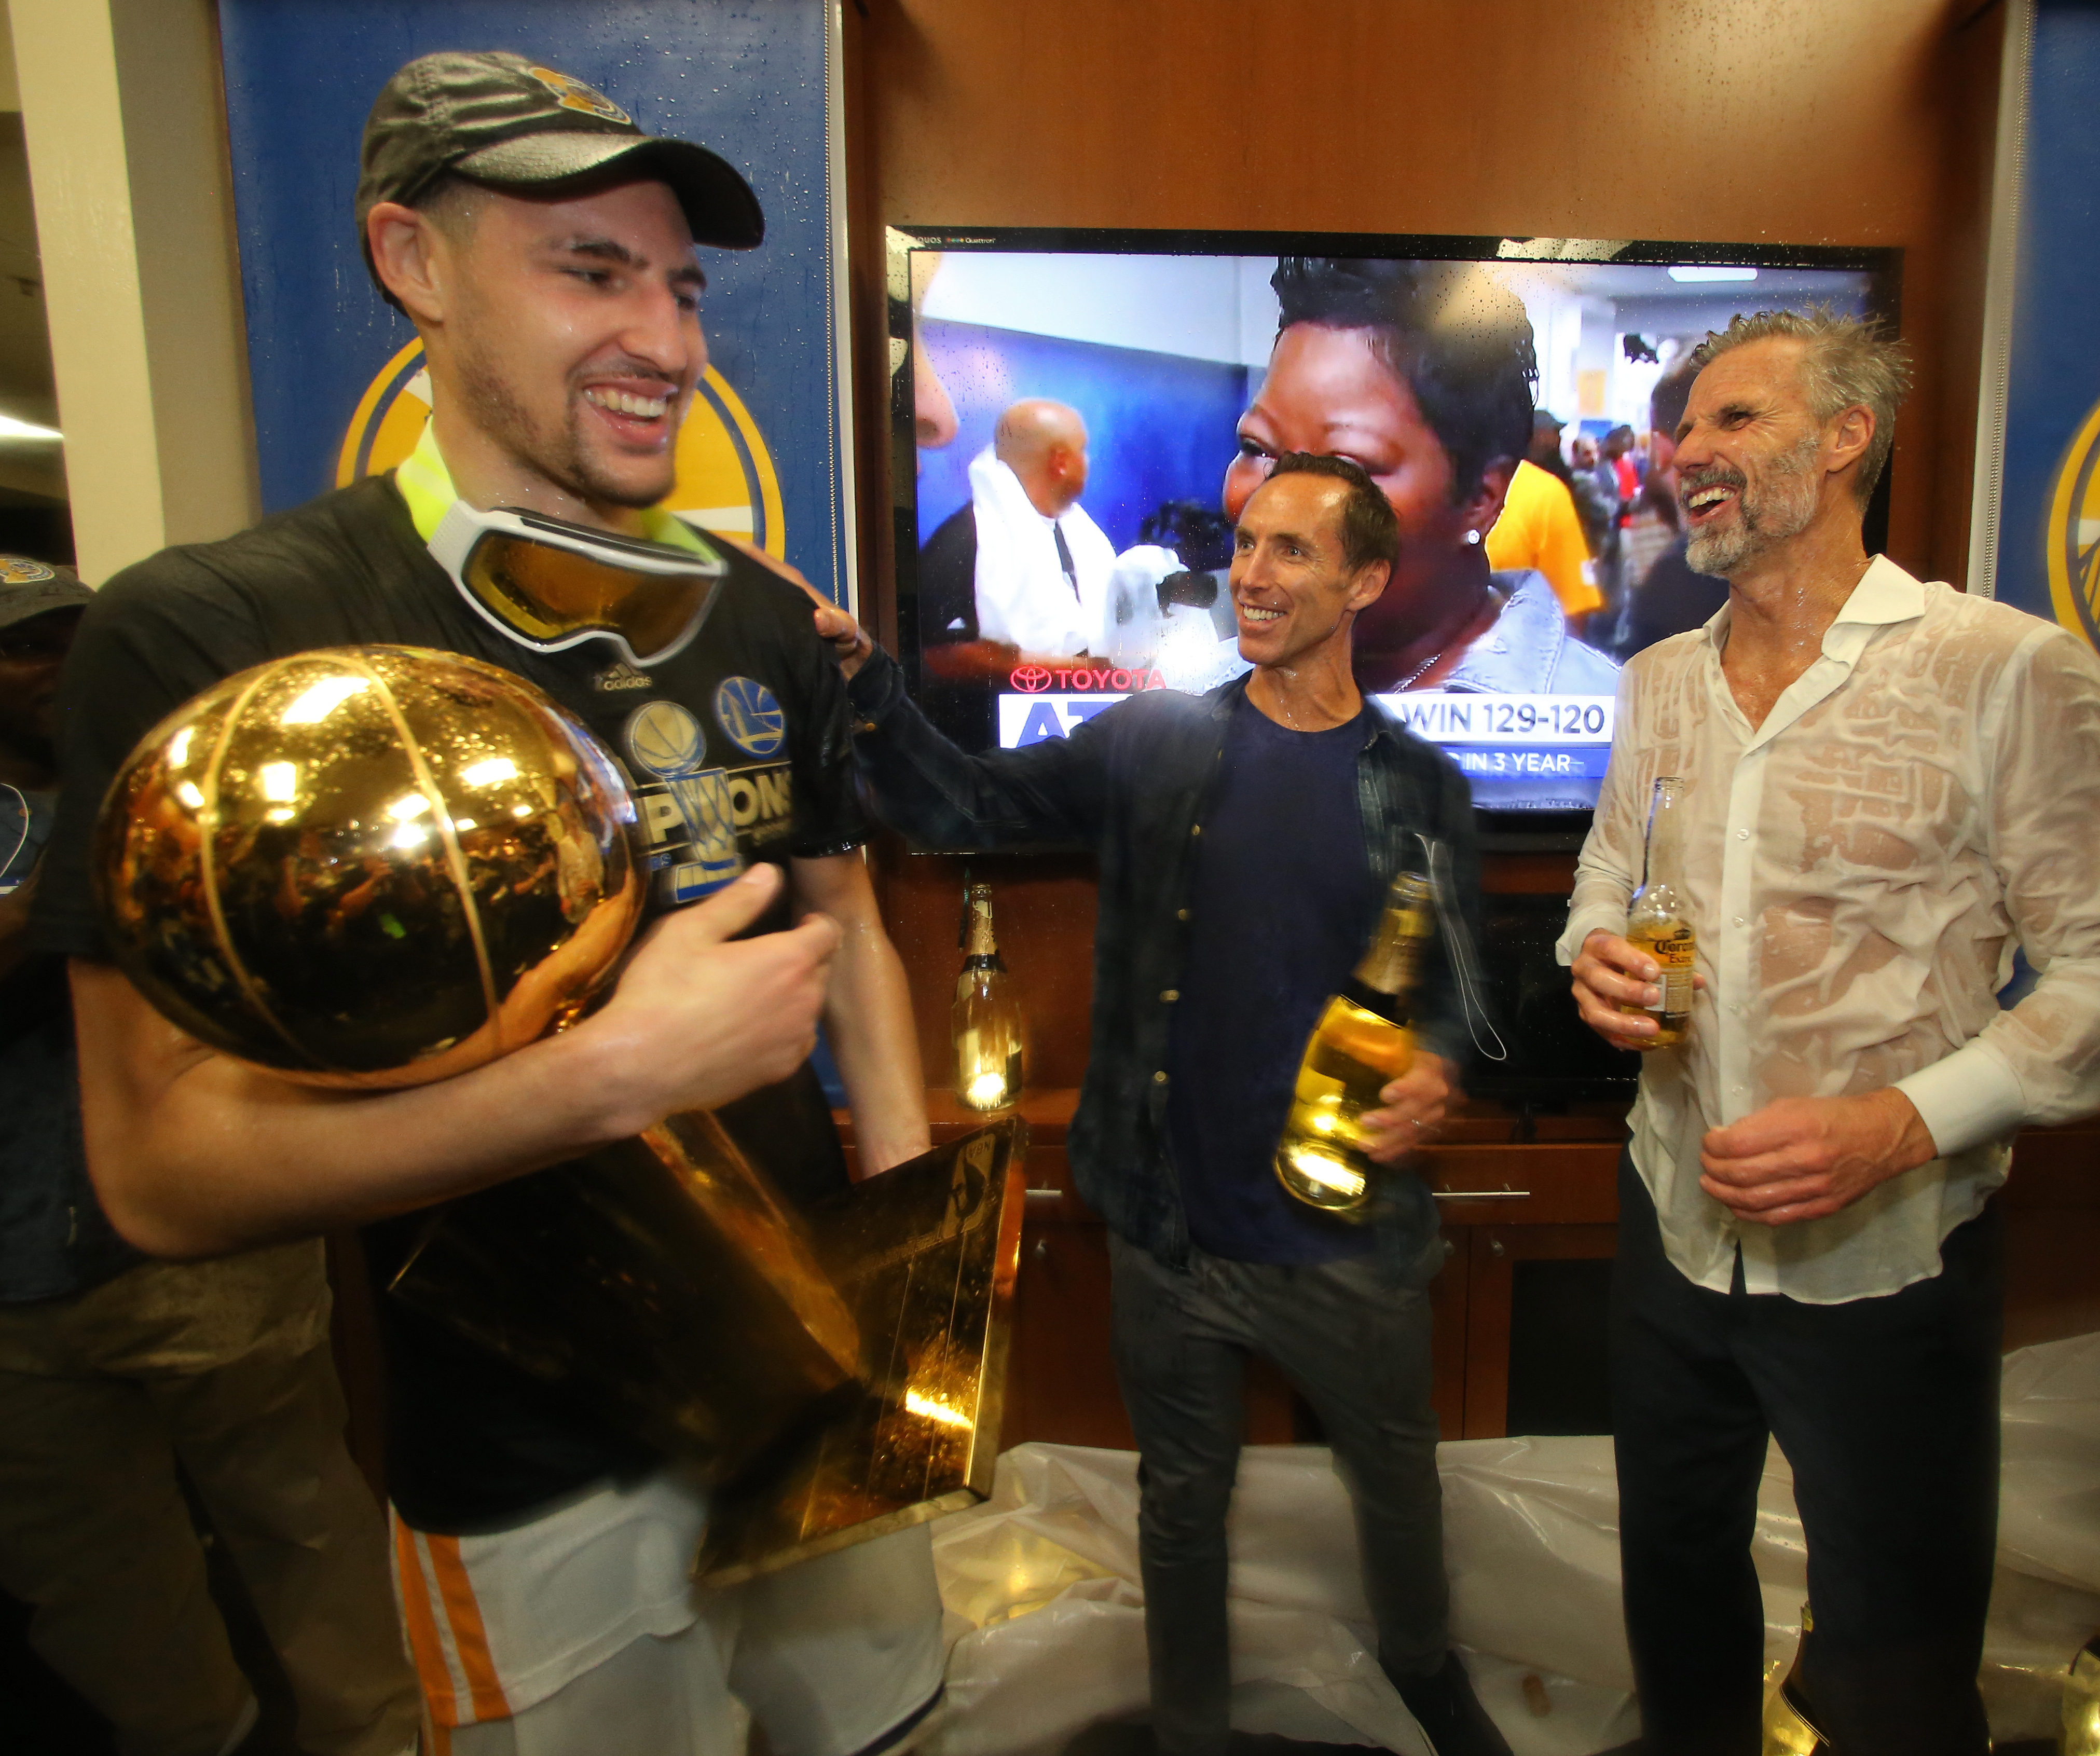 Golden State Warriors Record Without Steph Curry: What If Steph Curry, Kevin Durant, And The Warriors Get